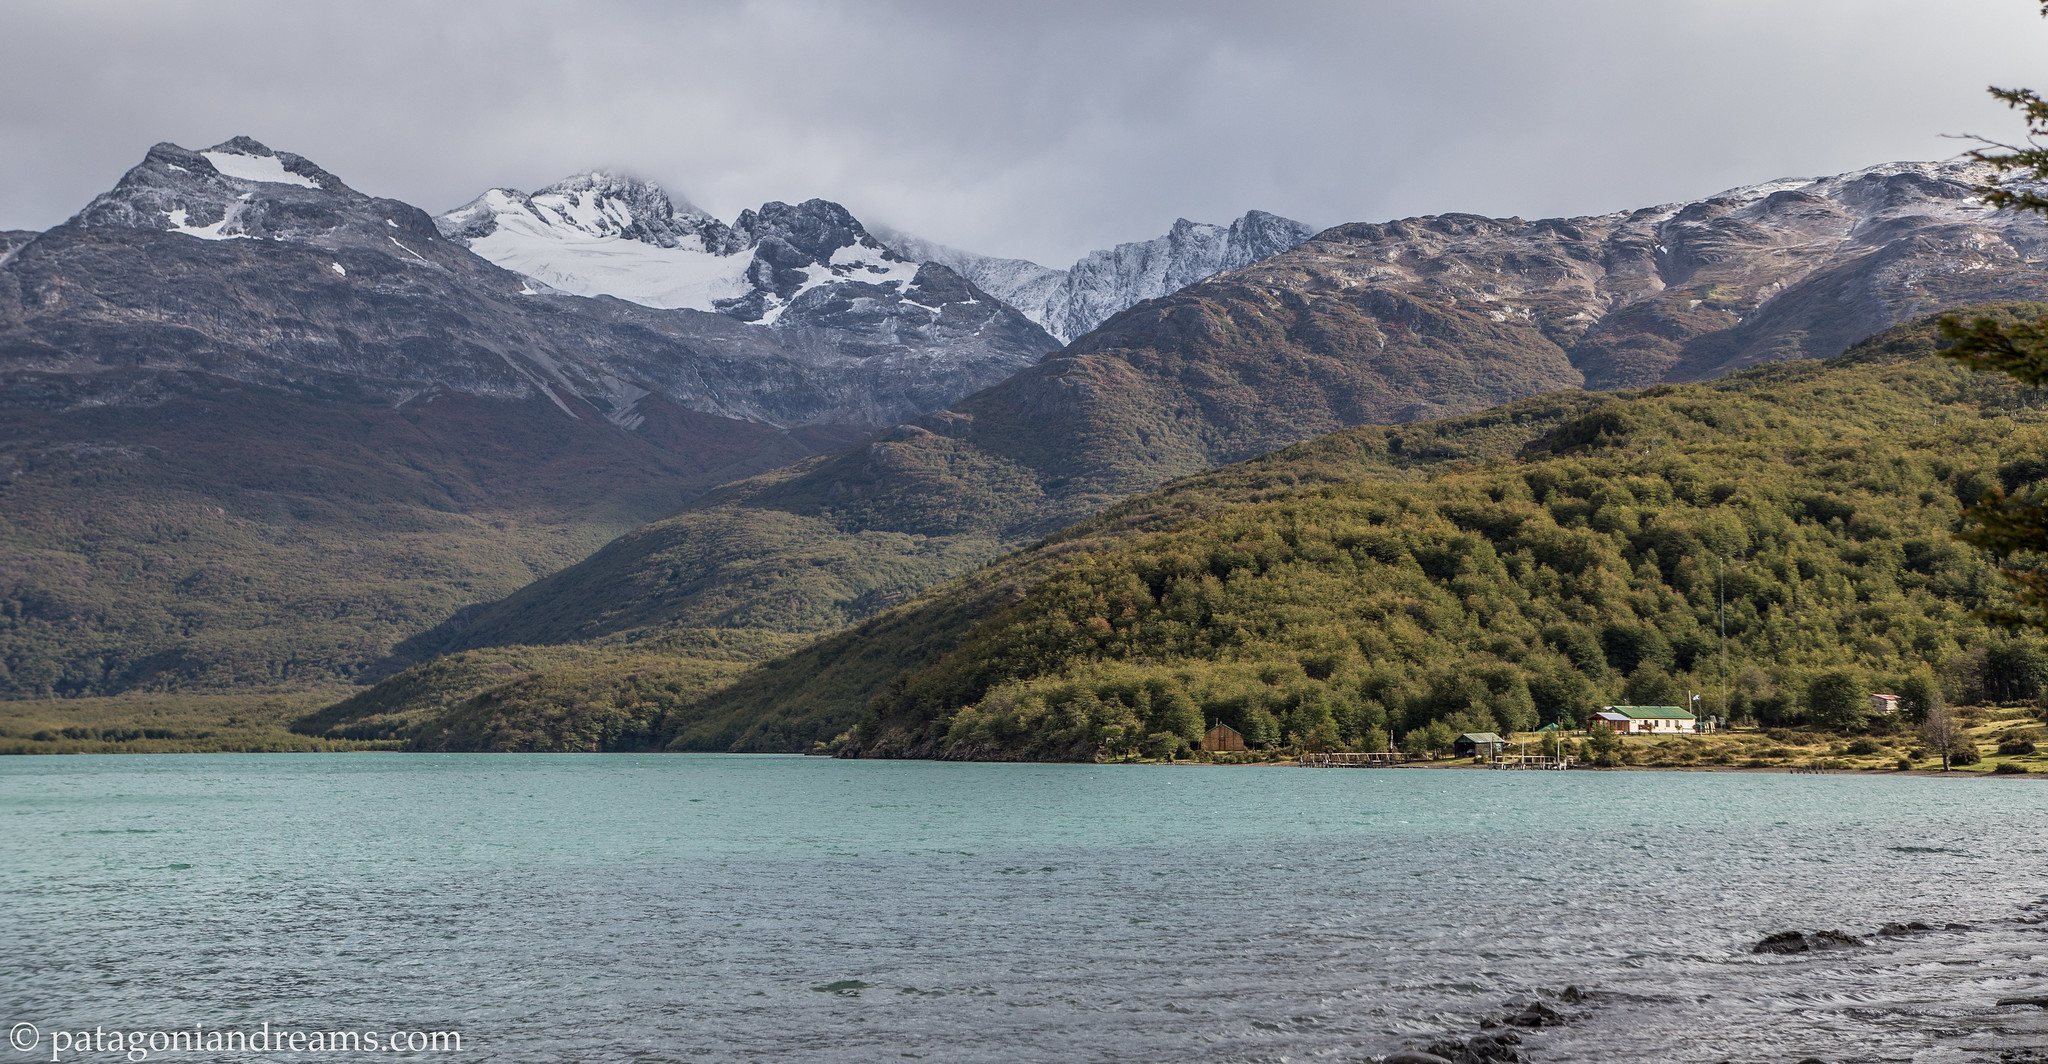 Detachment of the Gendarmería Nacional de Argentina, Lago del Desierto close to the Chilean border, Patagonia, Argentina.